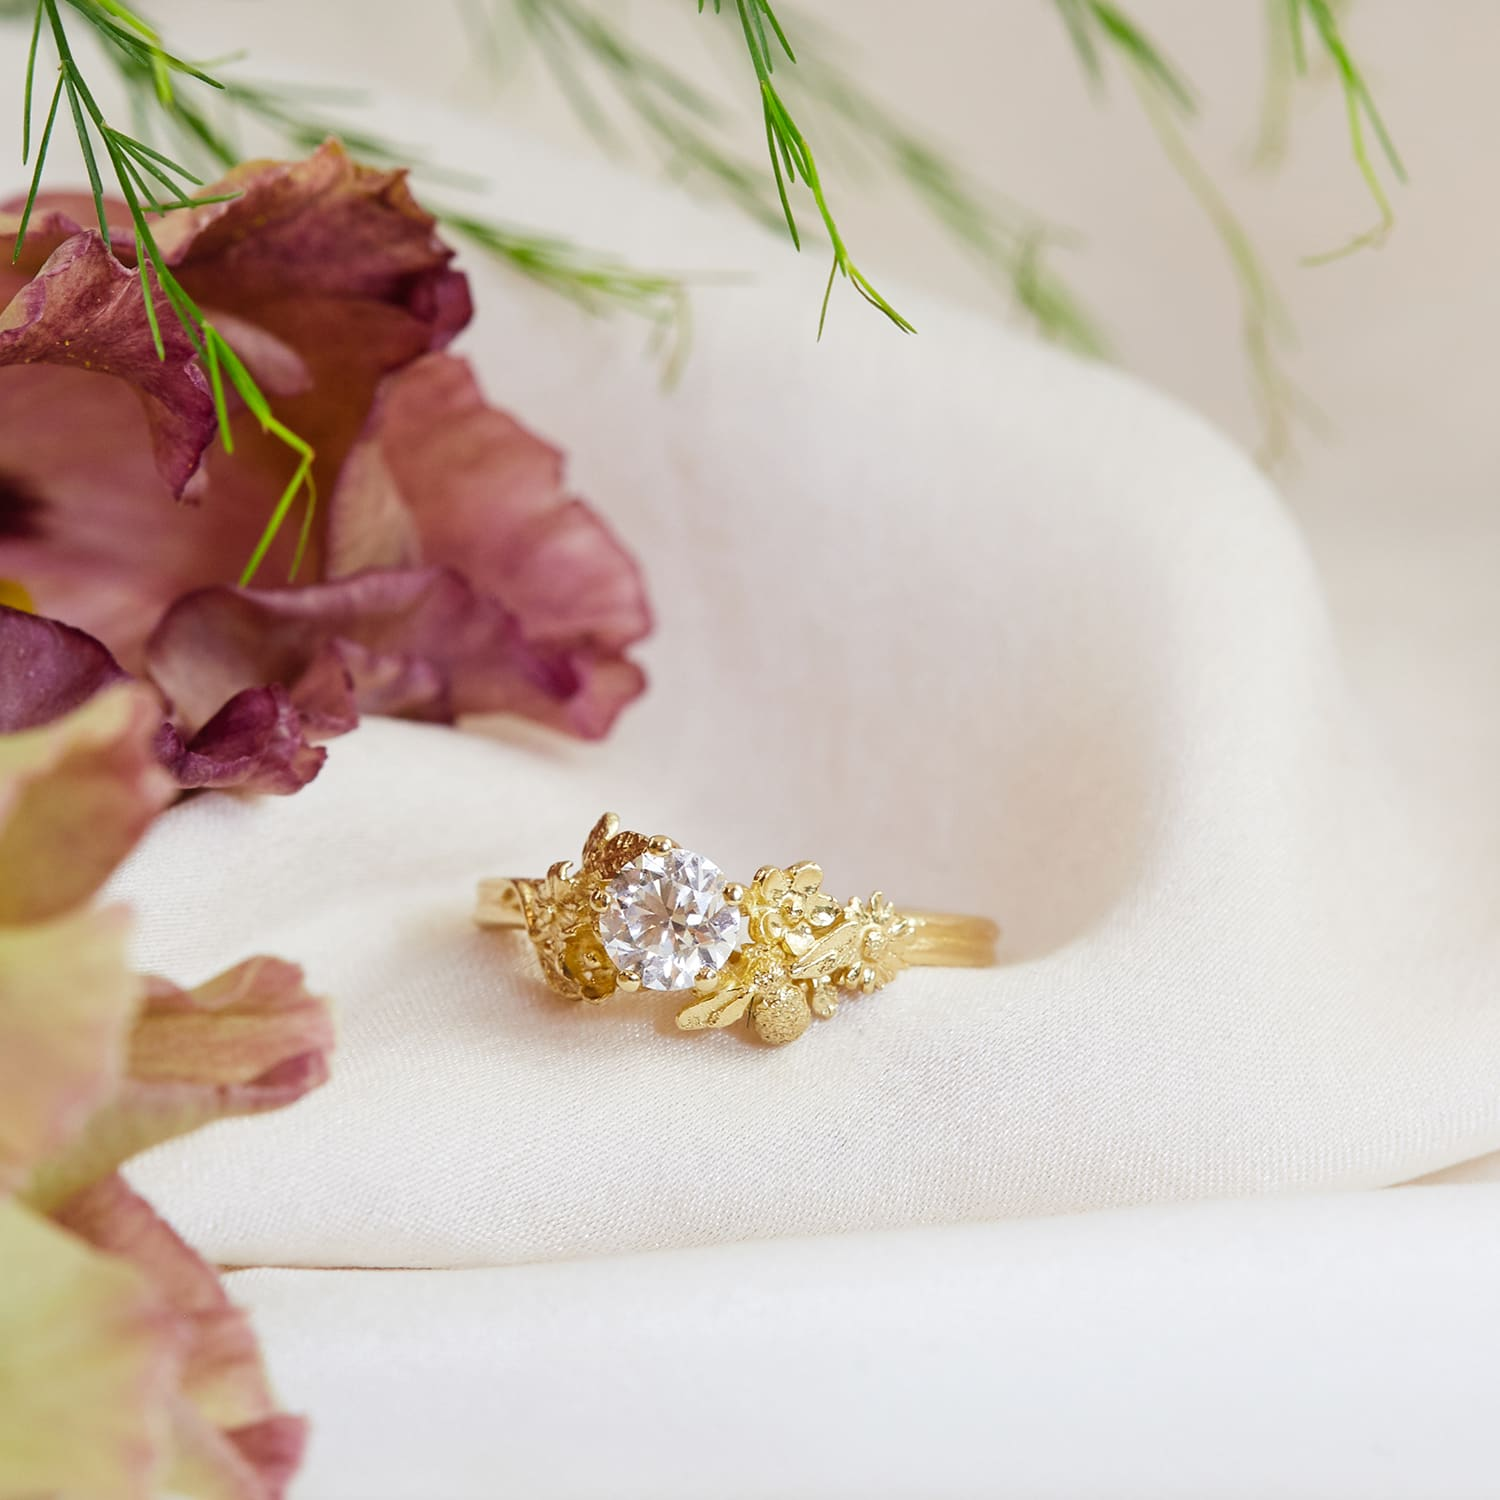 spectacular half carat diamond 18ct yellow gold engagement ring with bee and floral details on silk with flower petals